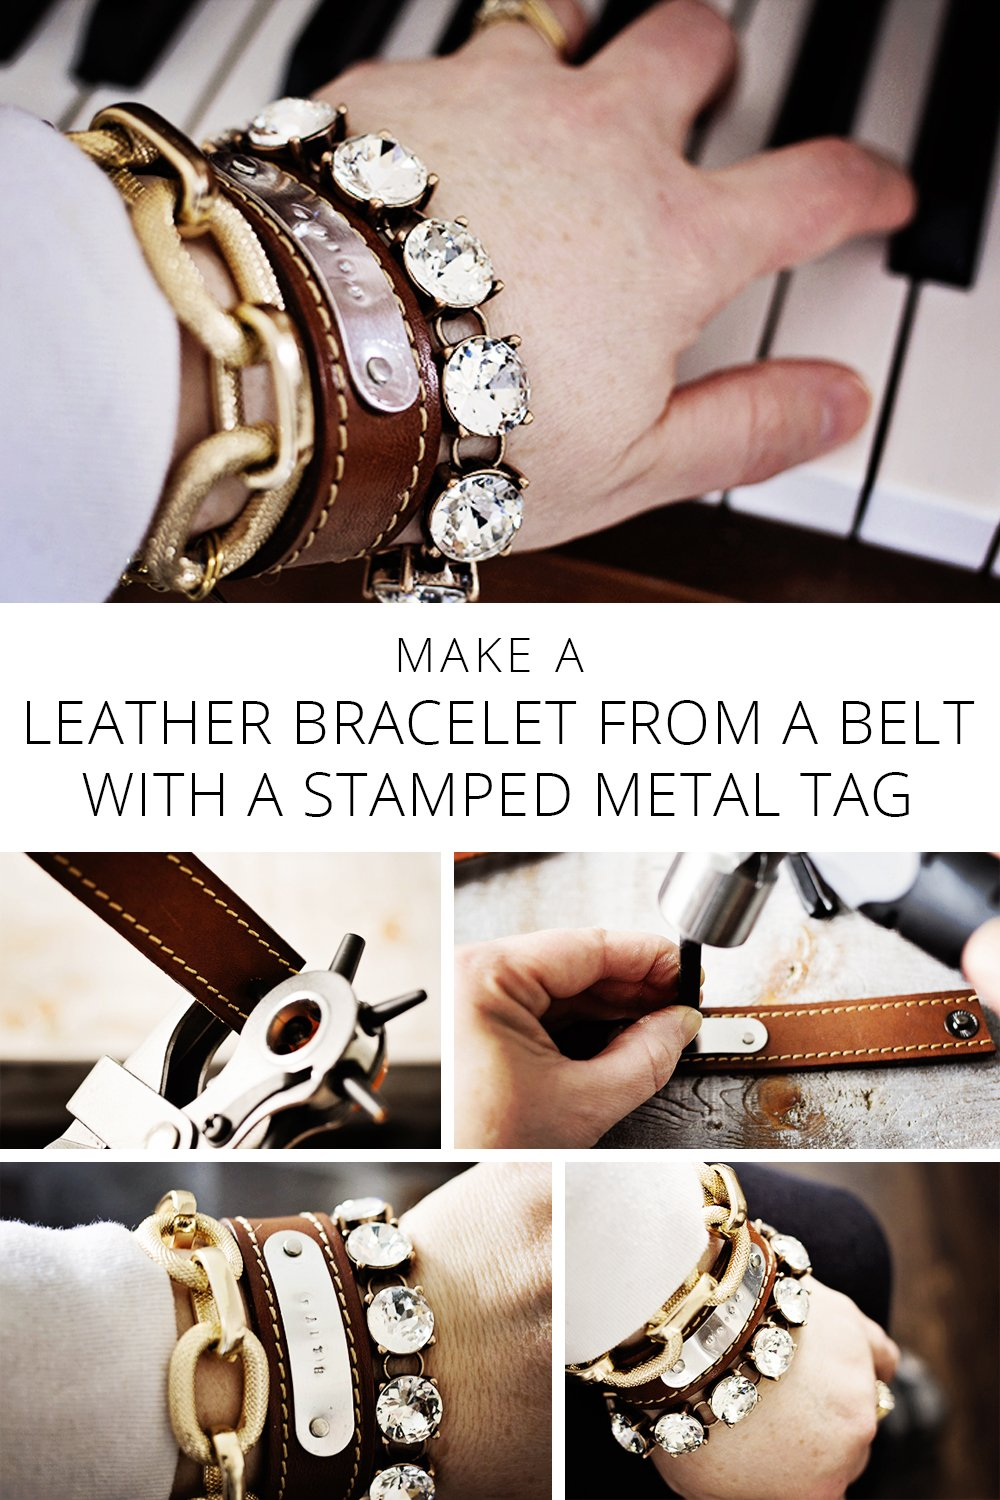 Make a LEATHER BRACELET FROM A BELT with a STAMPED METAL TAG